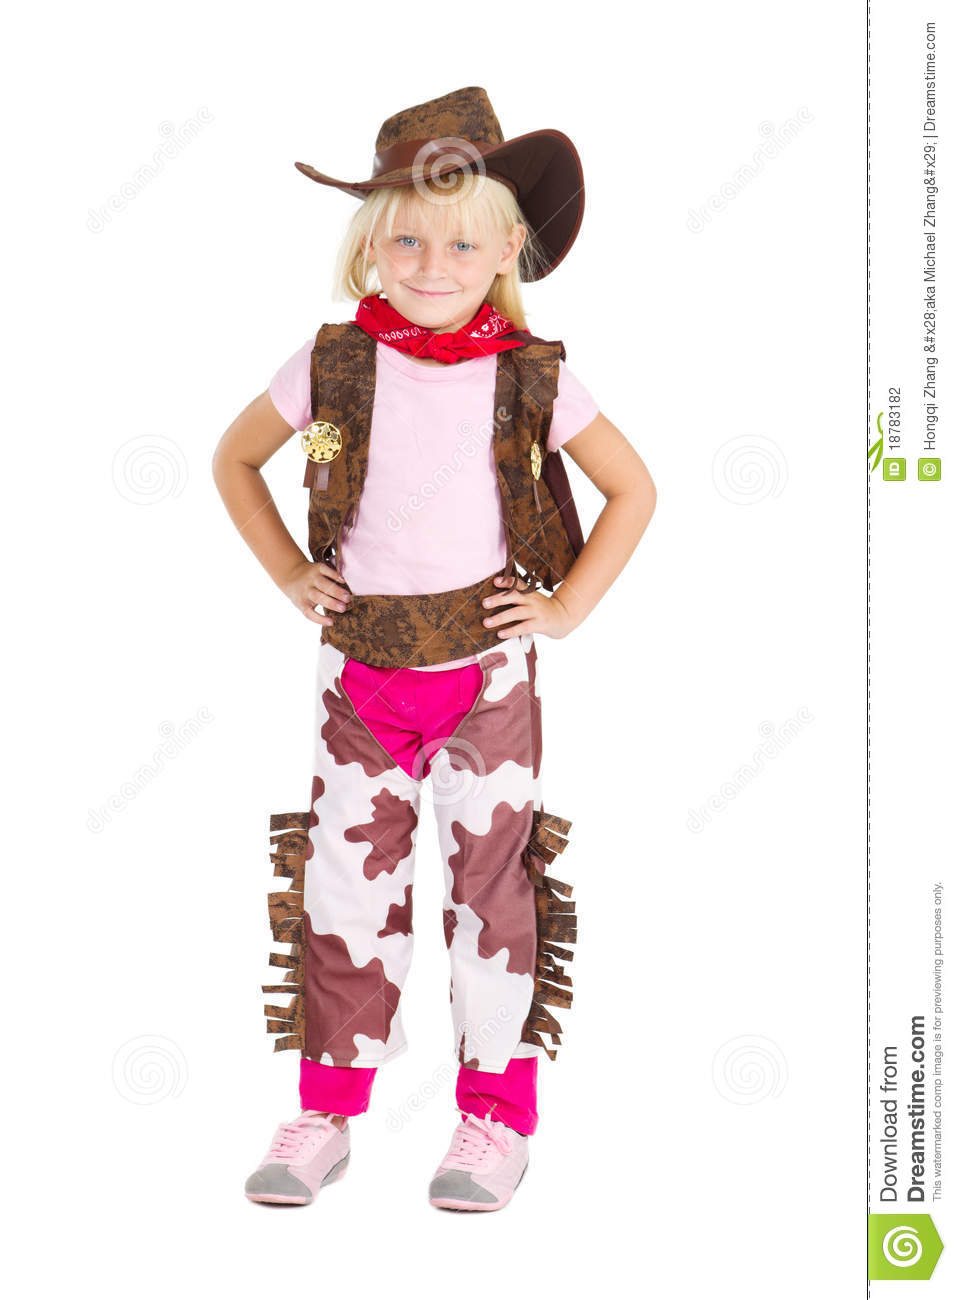 Little cute cowgirl  sc 1 st  Dreamstime.com & Little cute cowgirl stock photo. Image of imagination - 18783182